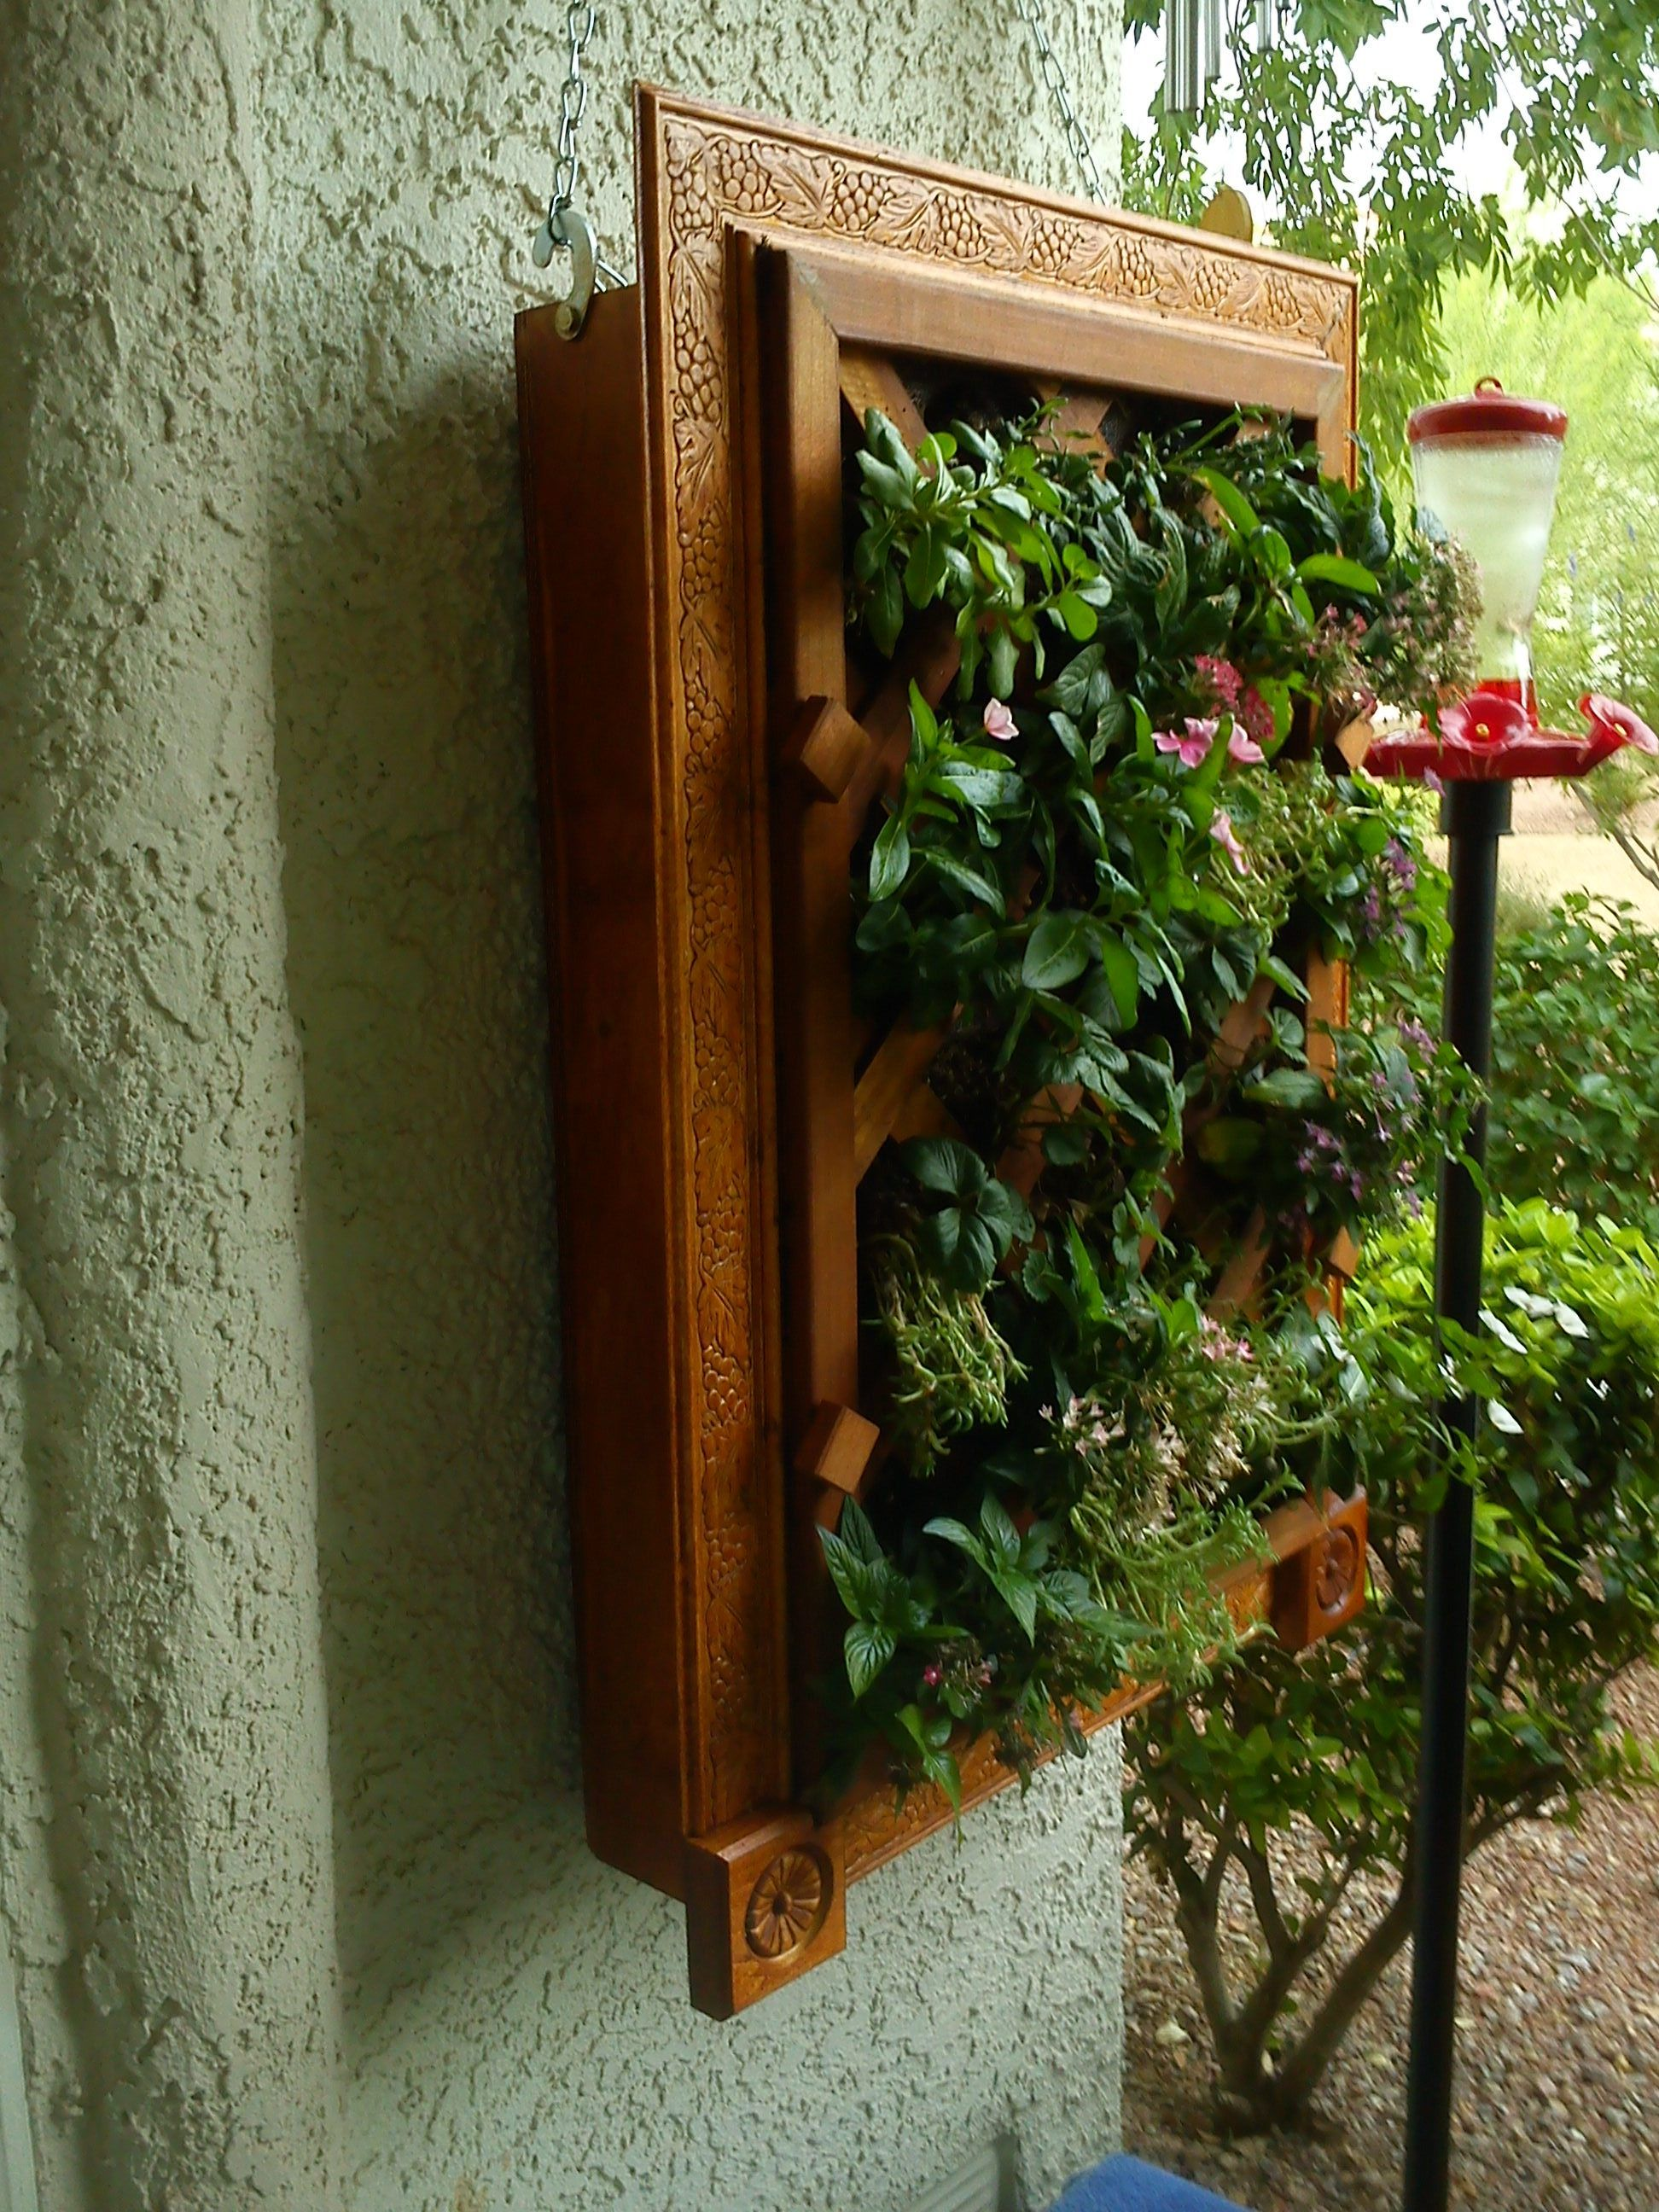 This Stunning Vertical Garden Box Was Built By Eugene Varcados A Home Fuse Member Of The